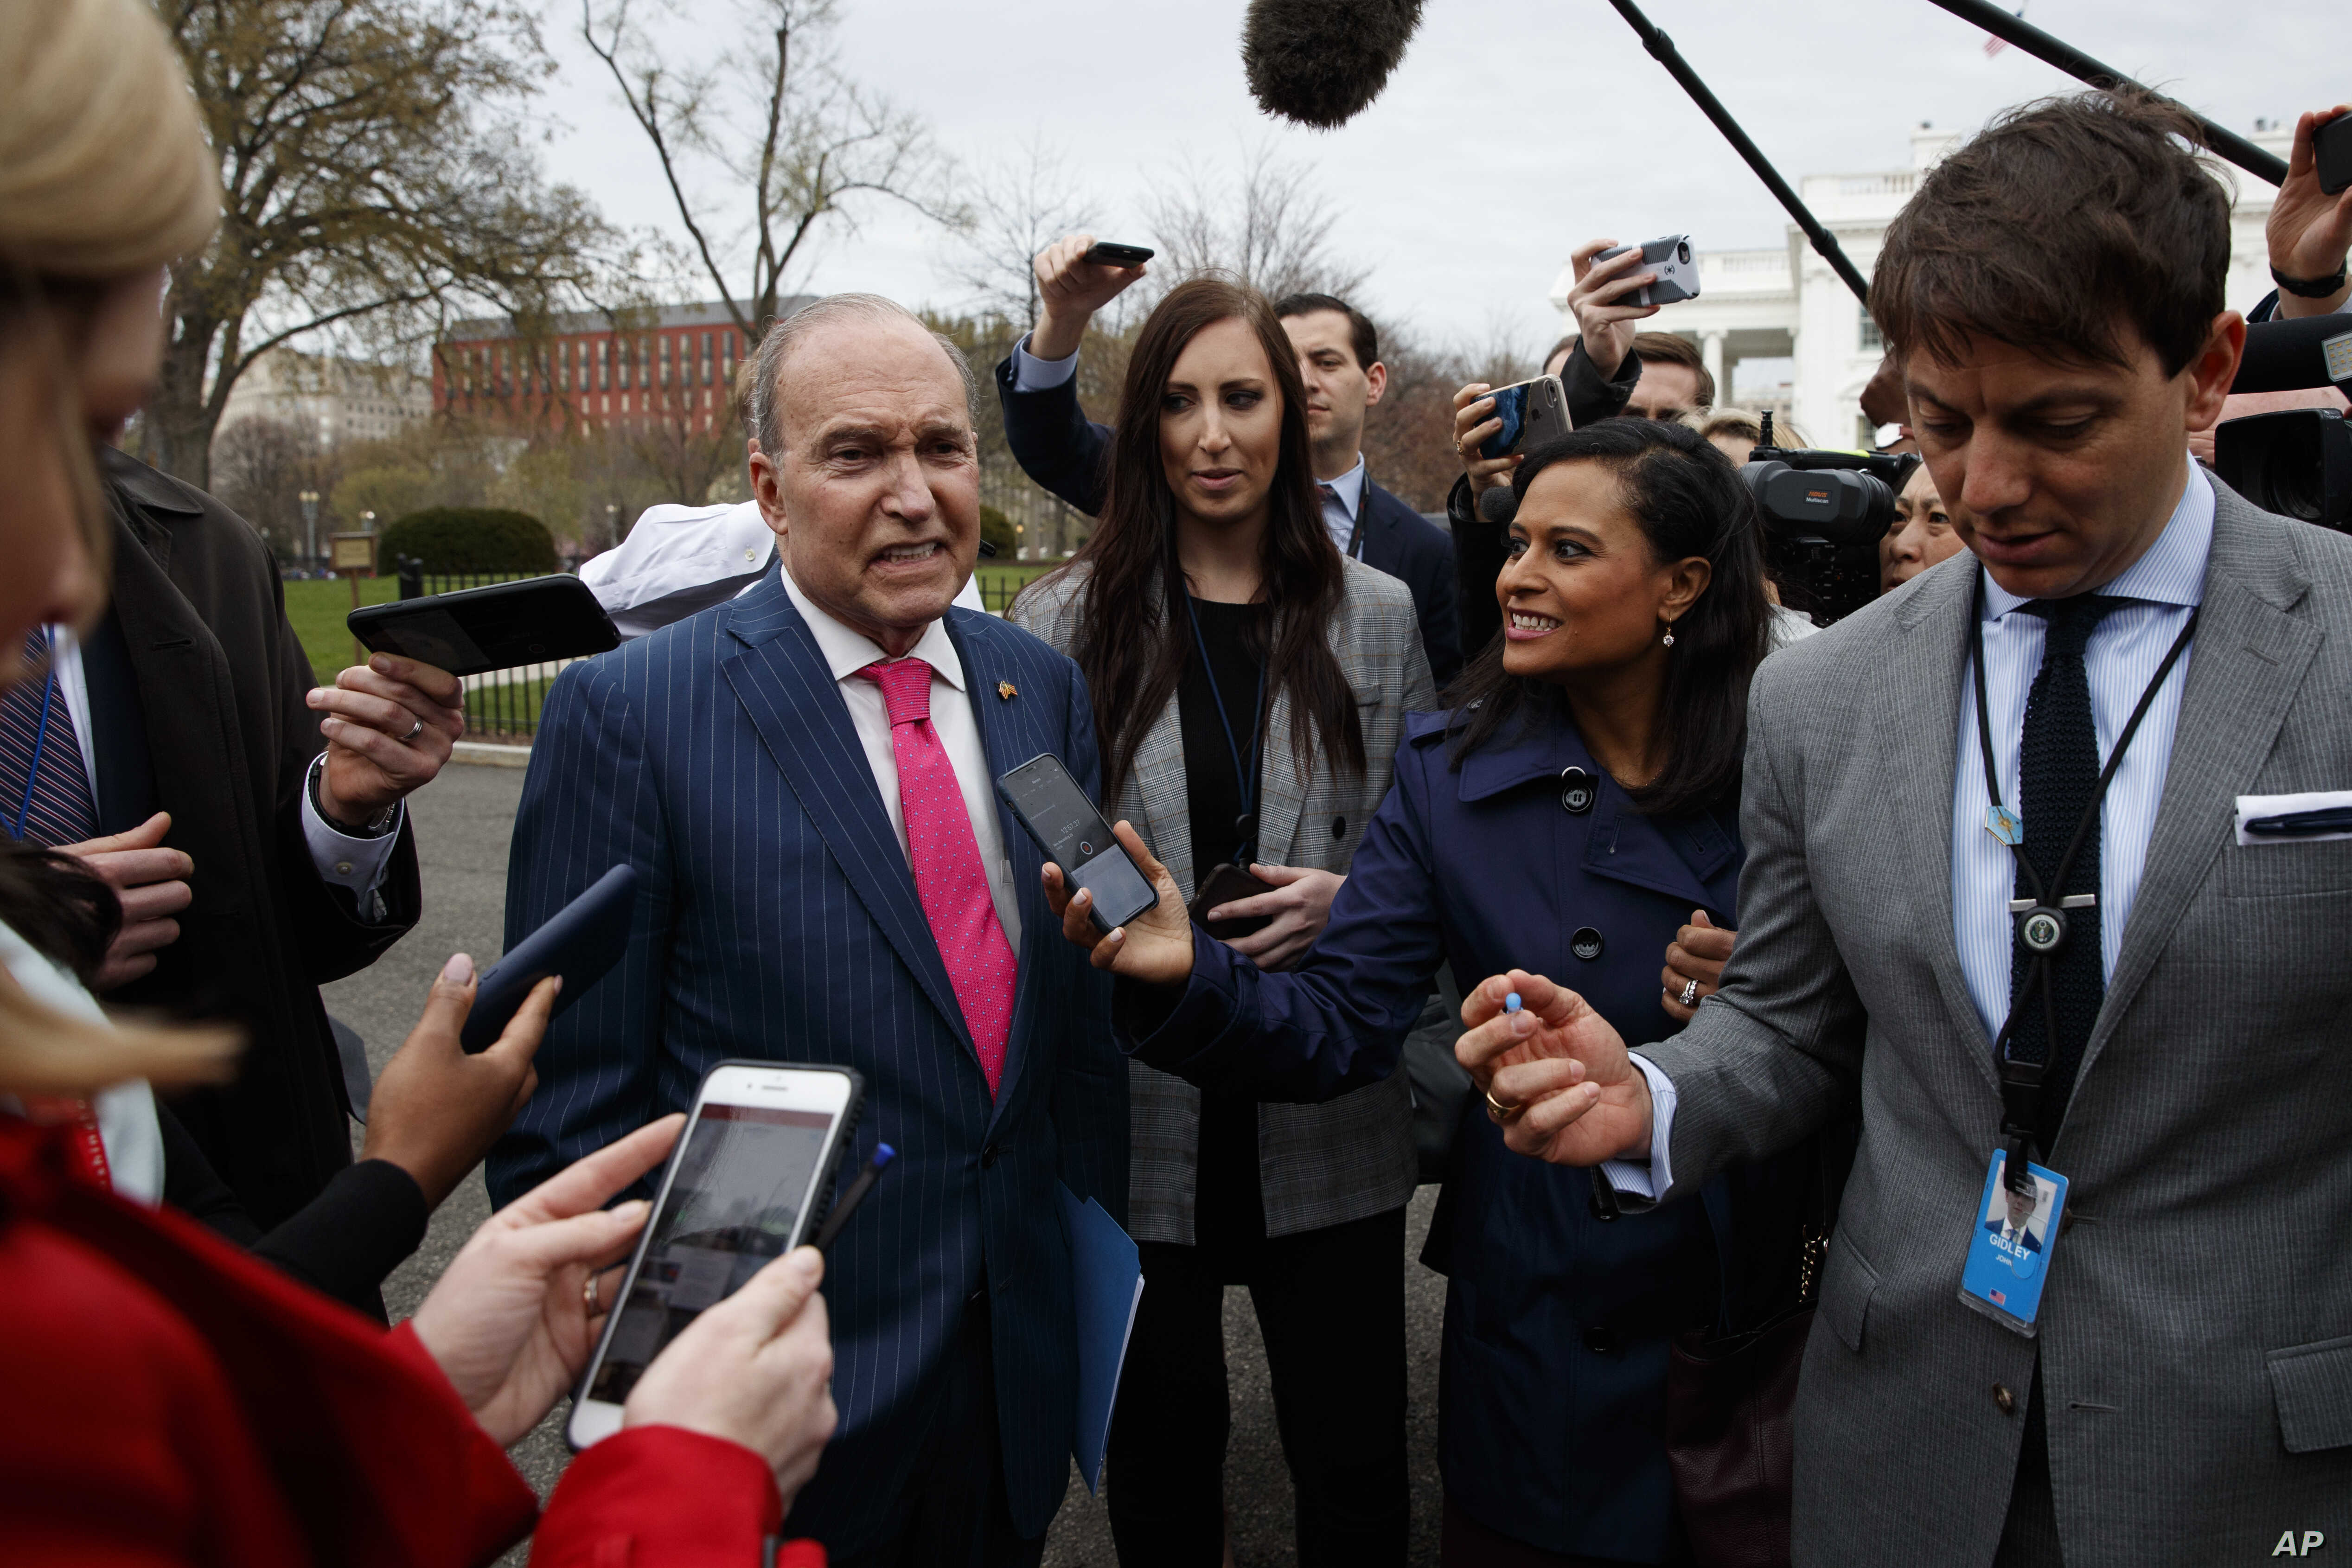 White House chief economic adviser Larry Kudlow talks with reporters outside the White House, April 4, 2018, in Washington.